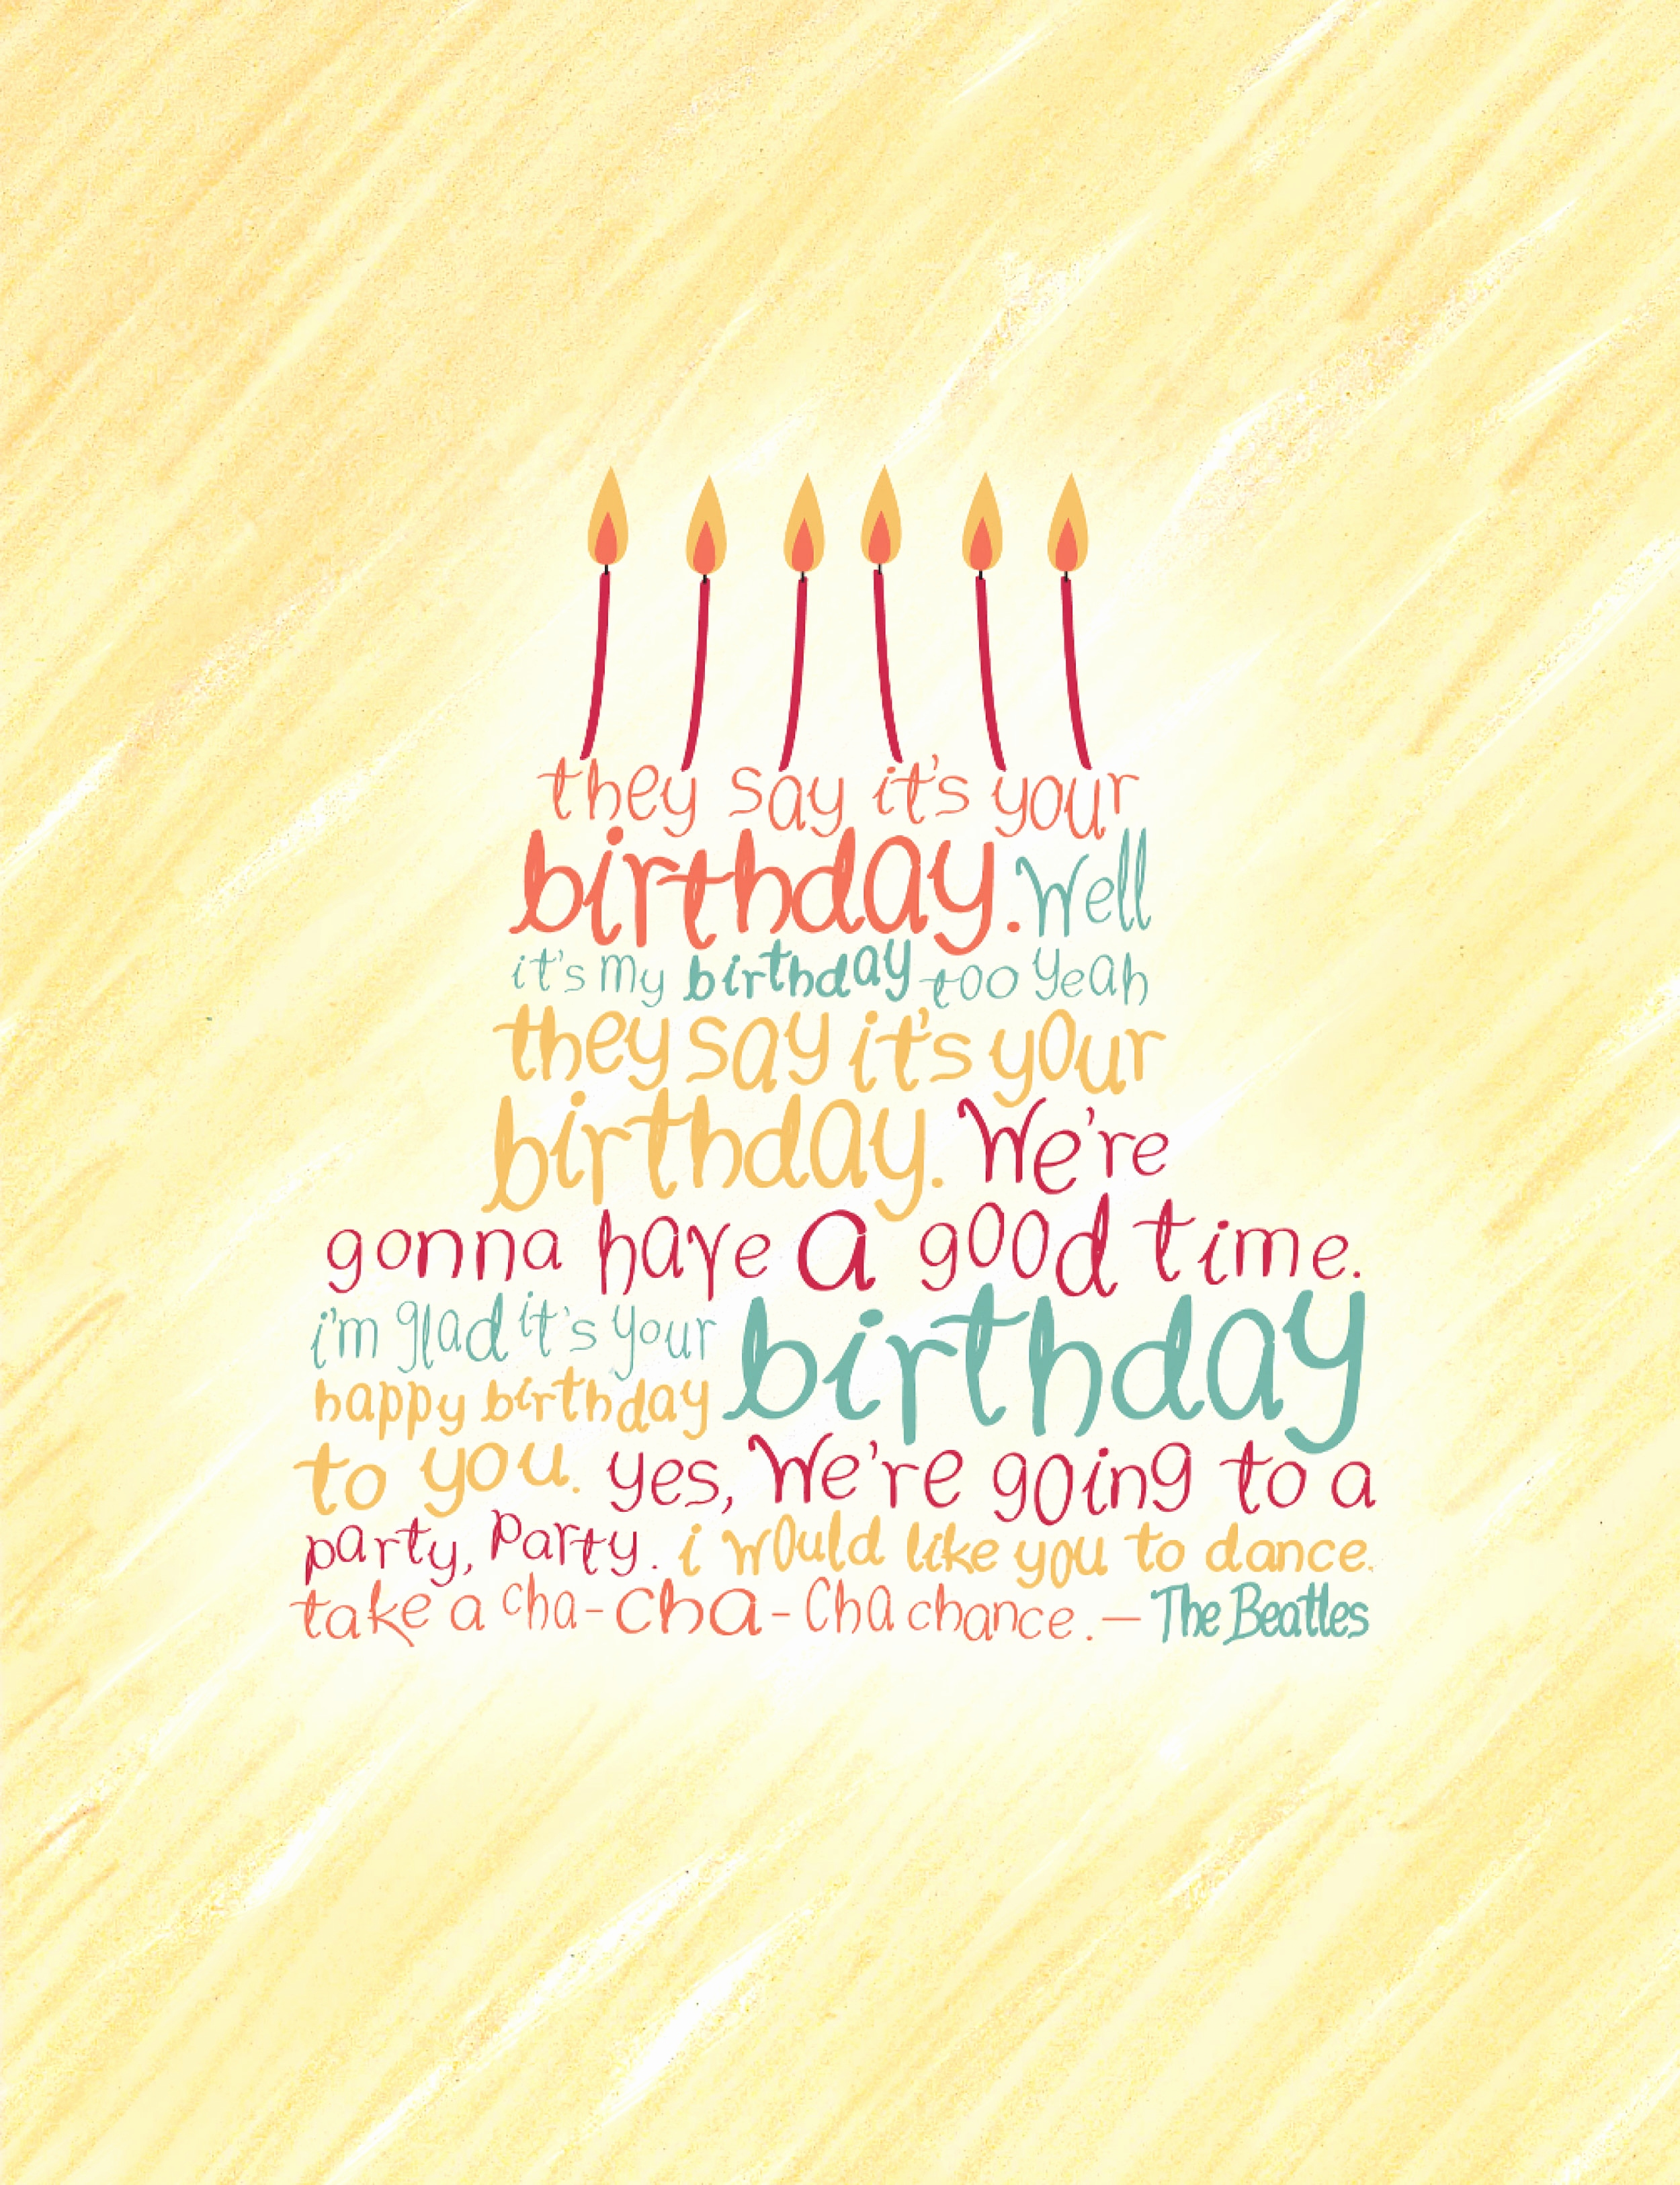 beatles today is your birthday card ; beatles%2520birthday%2520card%2520;%2520beatles-birthday-card-inspirational-beatles-birthday-card-rachel-huff-of-beatles-birthday-card